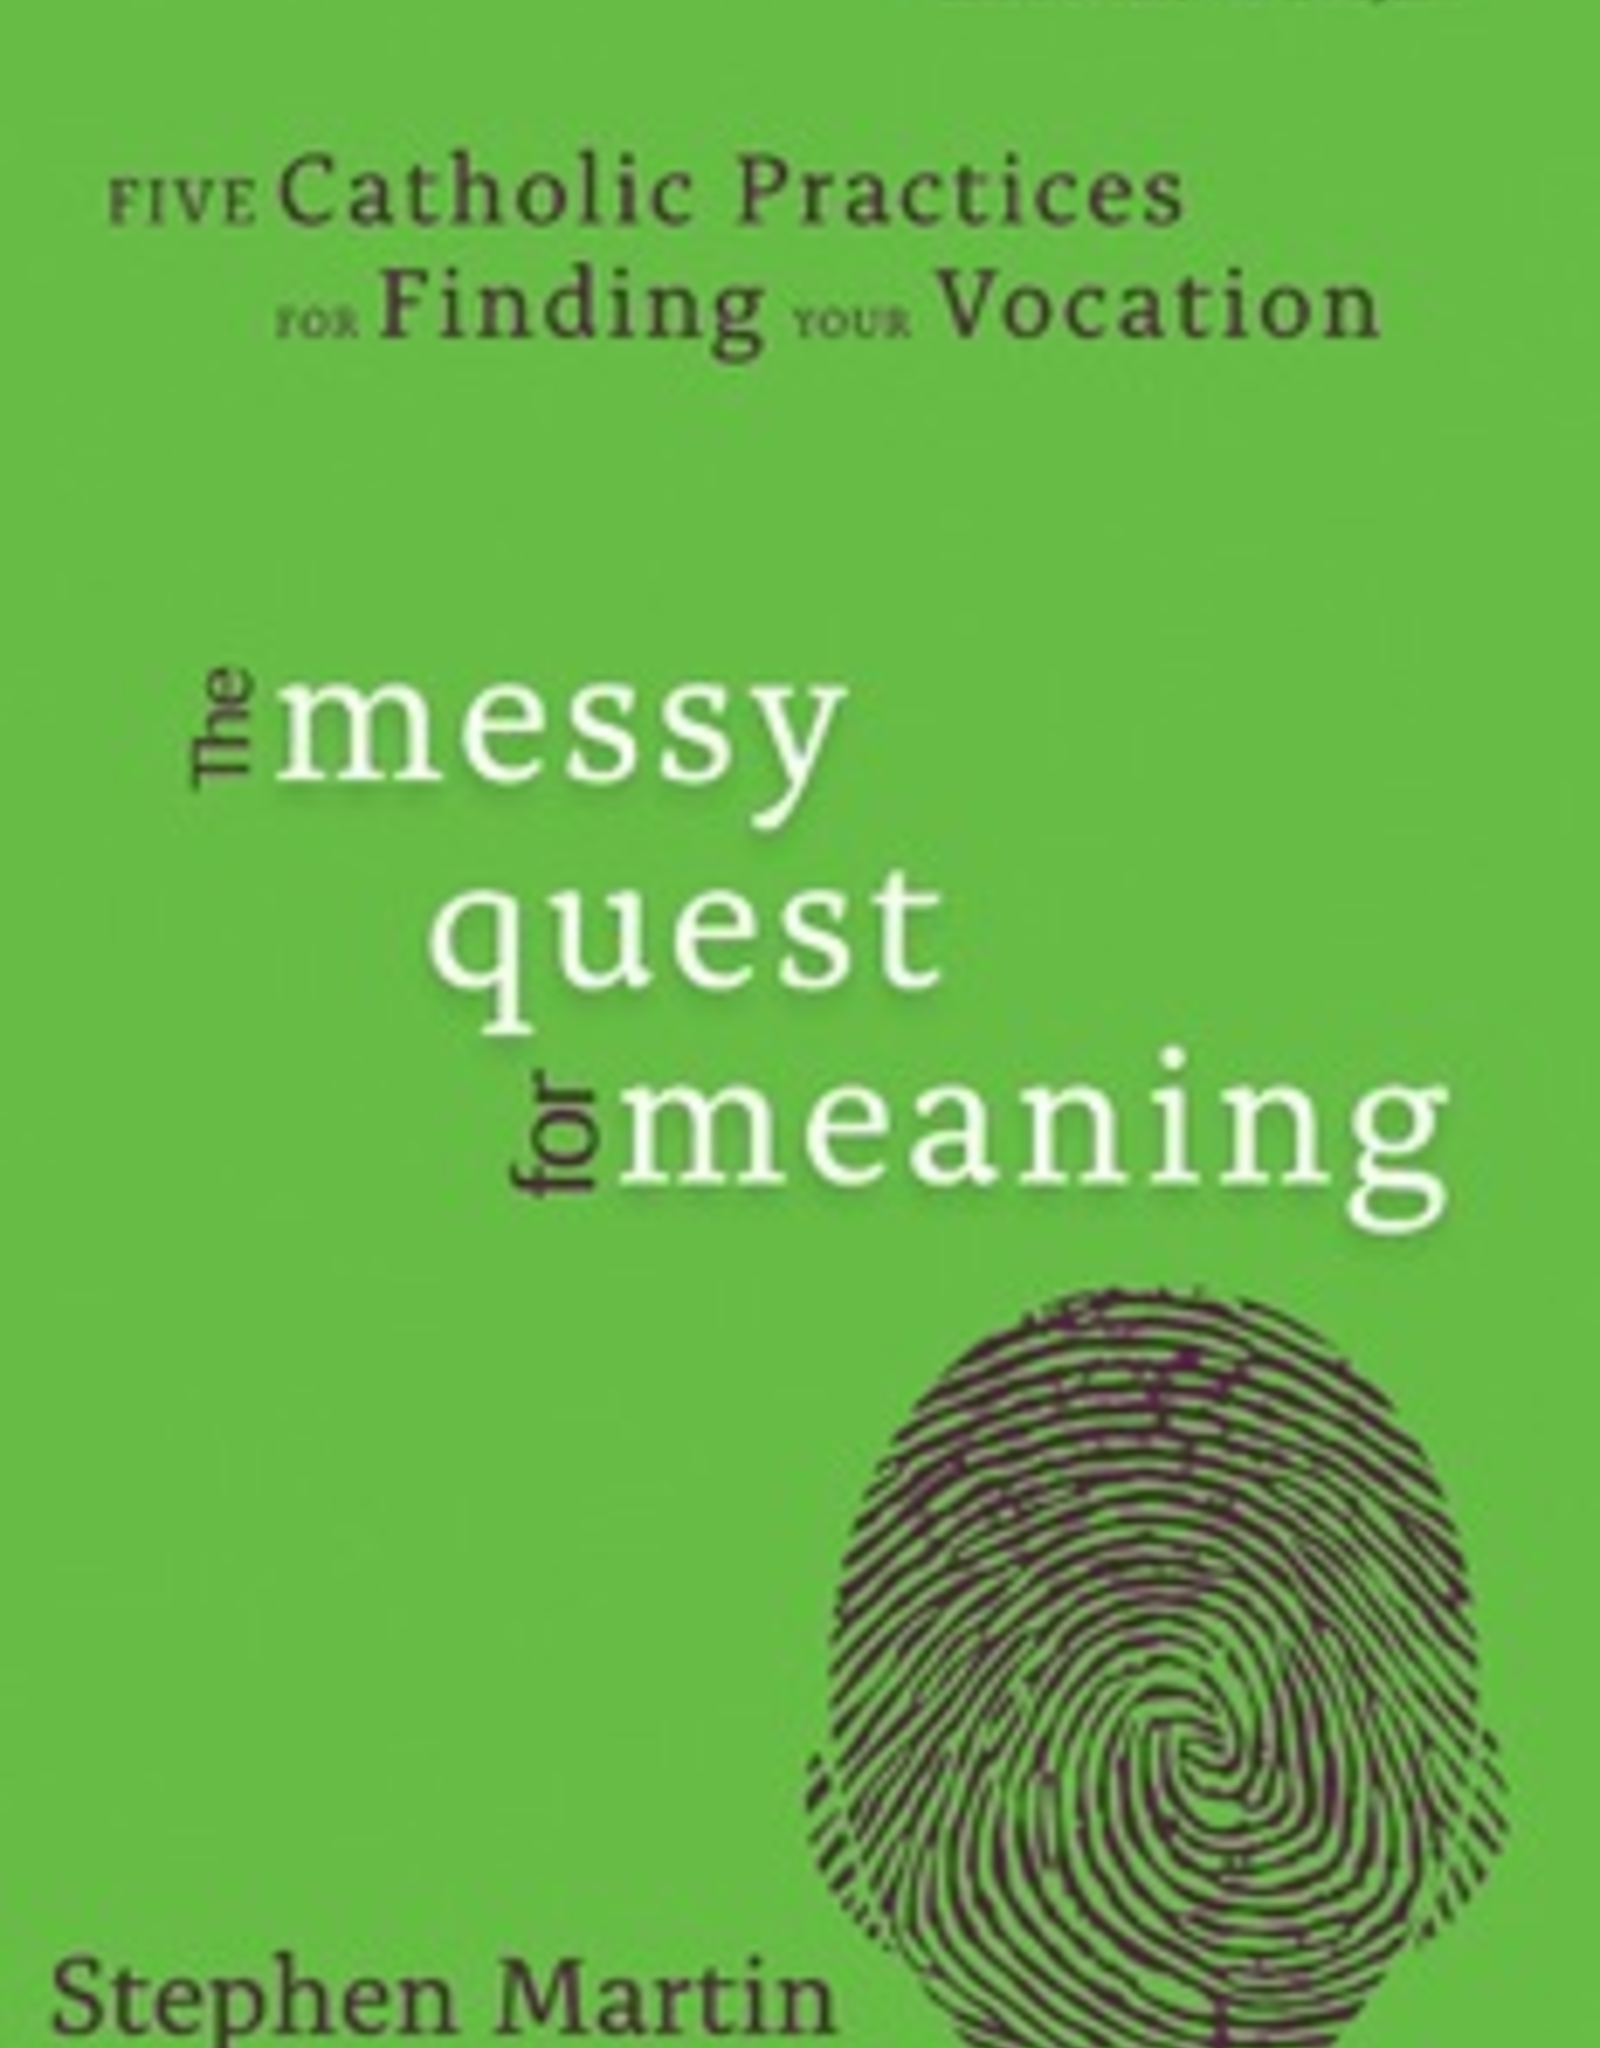 Ave Maria Press The Messy Quest for Meaning:  Five Catholic Practices for Finding Your Vocation, by Stephen Martin (paperback)